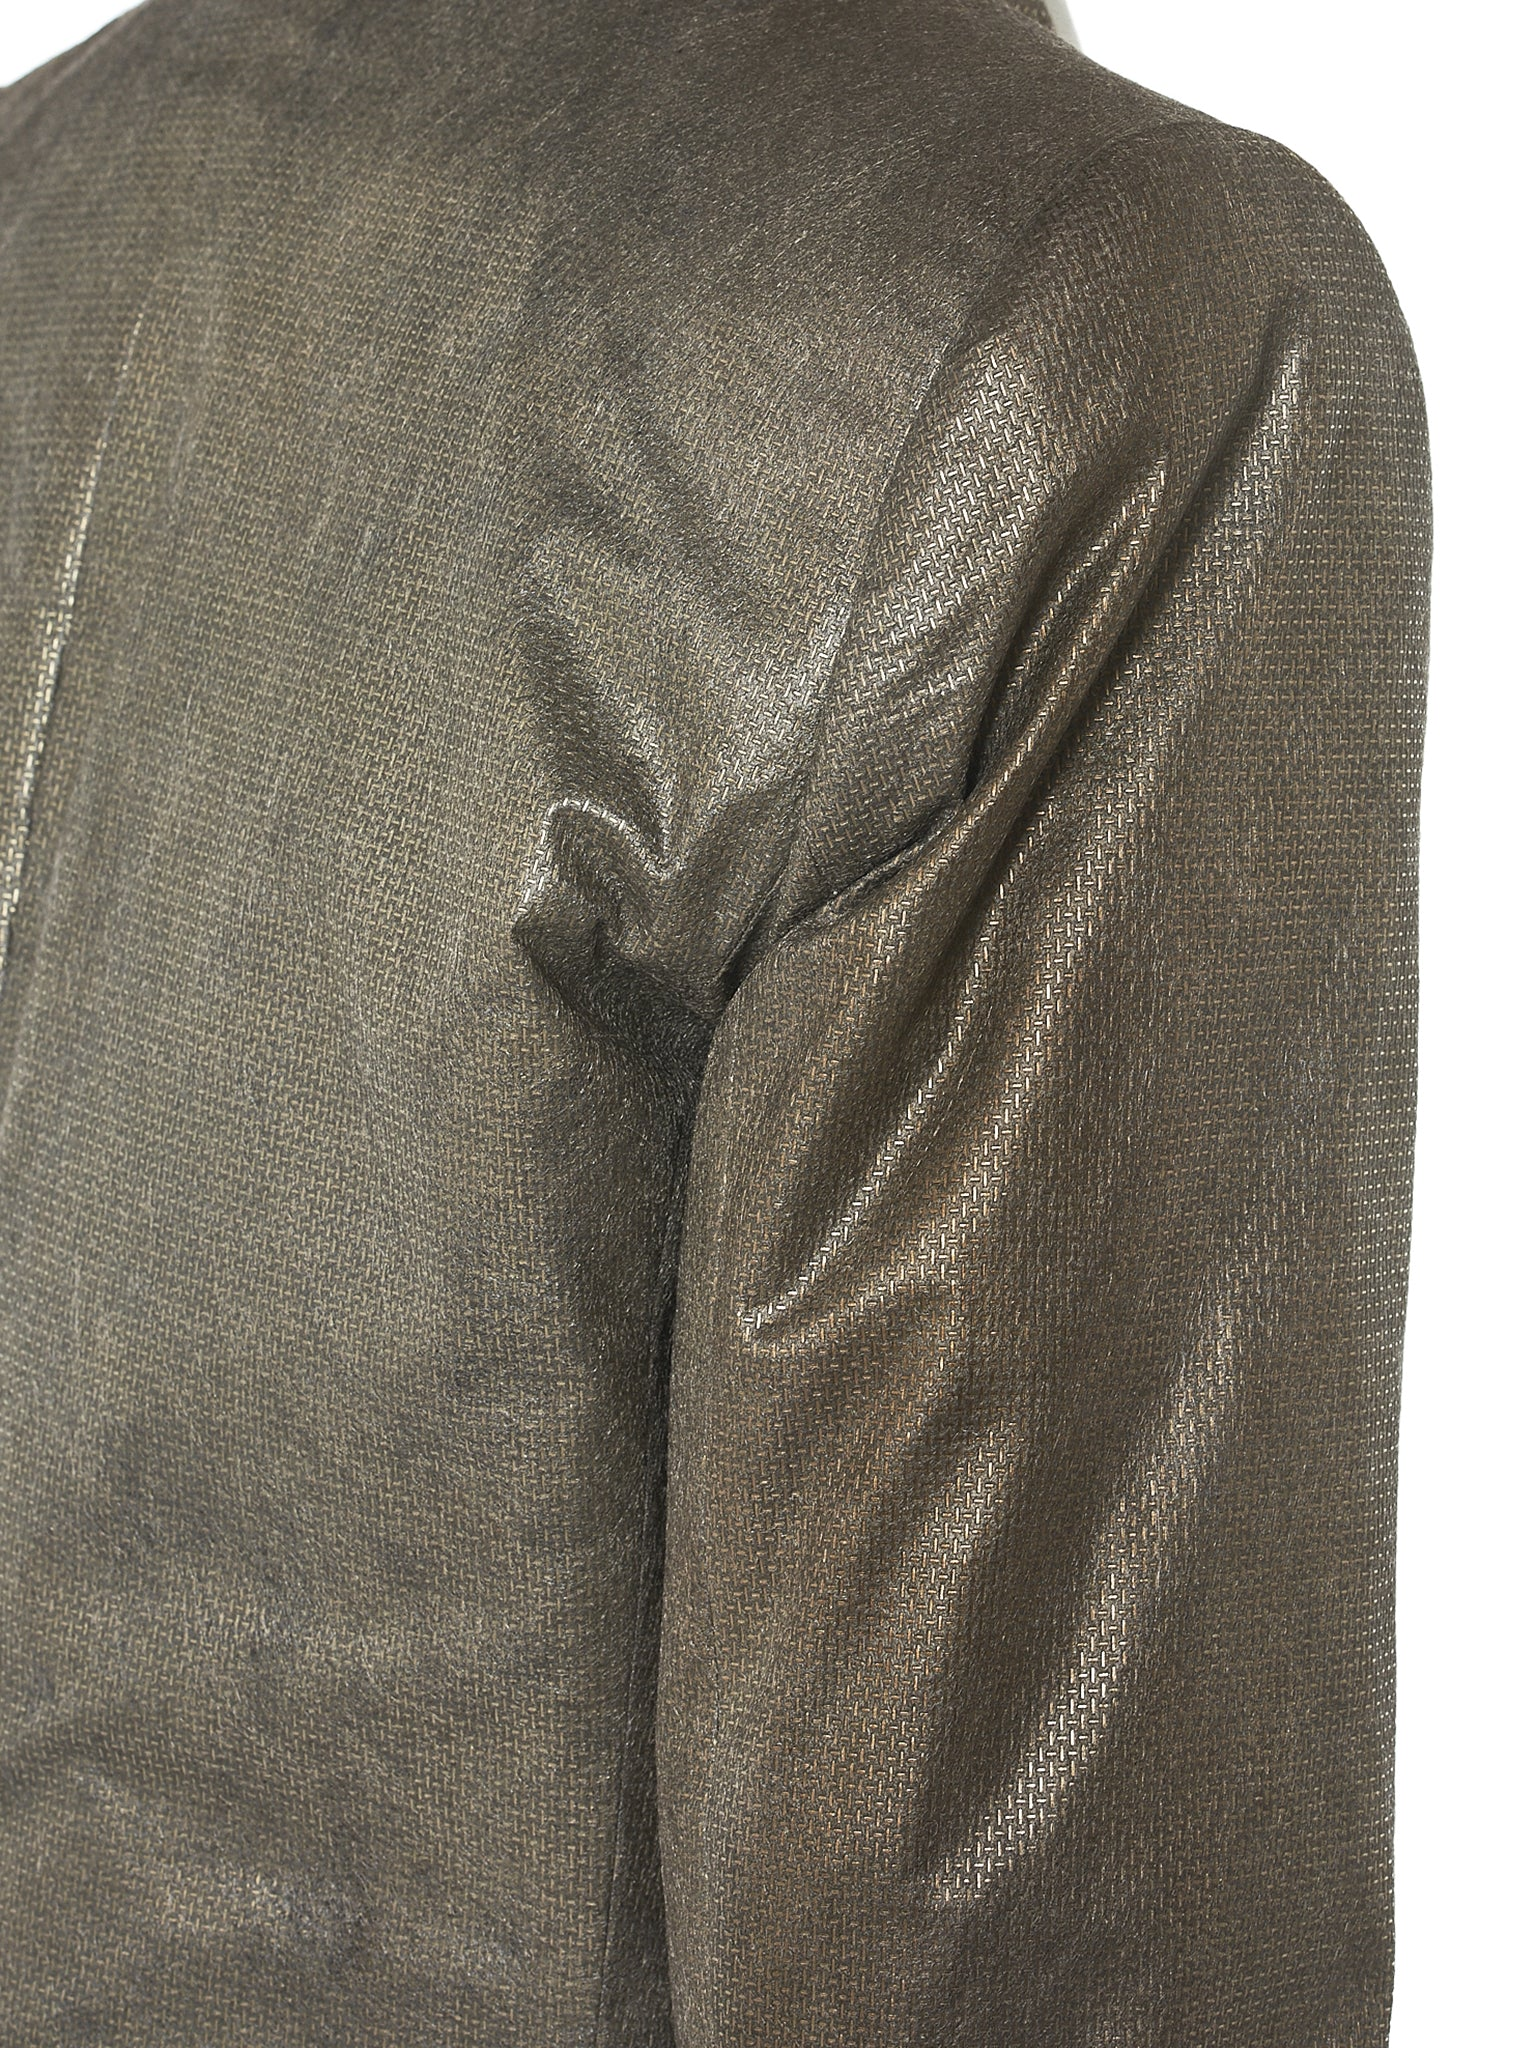 Deepti Oxidized Jacket - Hlorenzo Detail 1